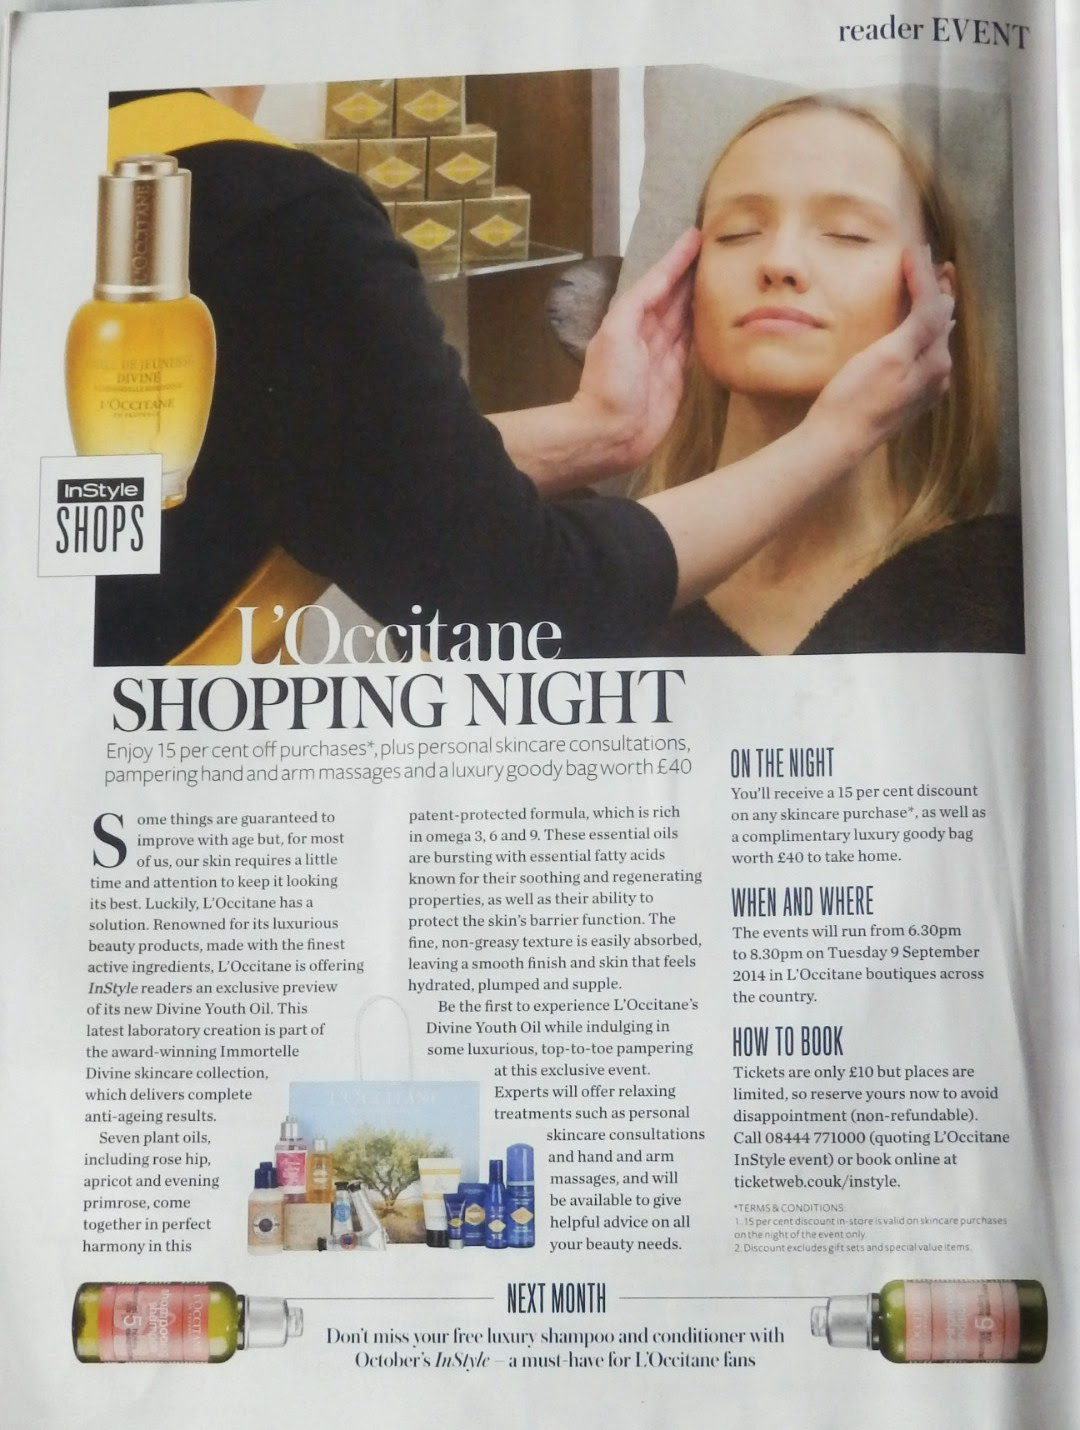 Instyle L'Occitane Shopping Night - Tuesday 9 September 2014